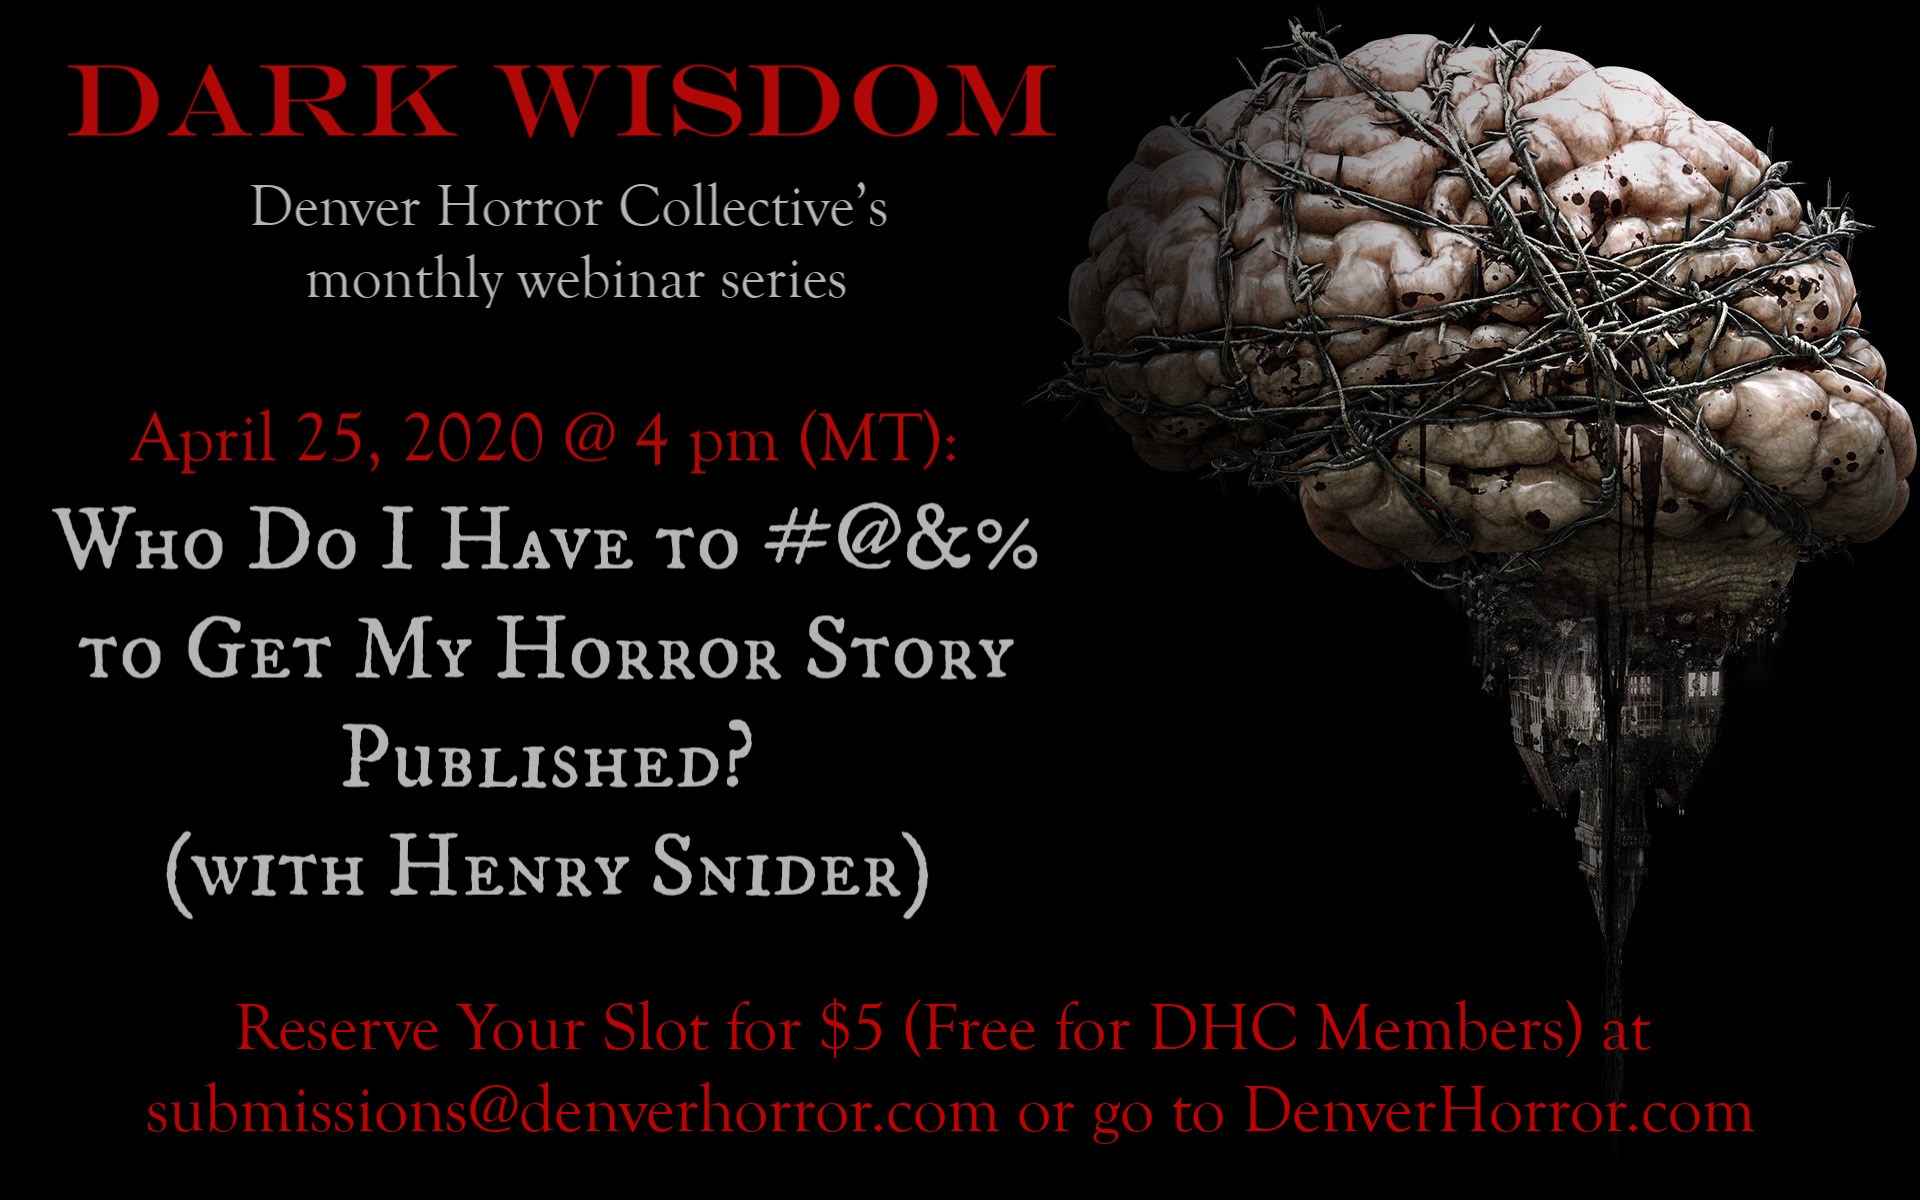 DARK WISDOM: WHO DO I HAVE TO #@&% TO GET MY HORROR STORY PUBLISHED?